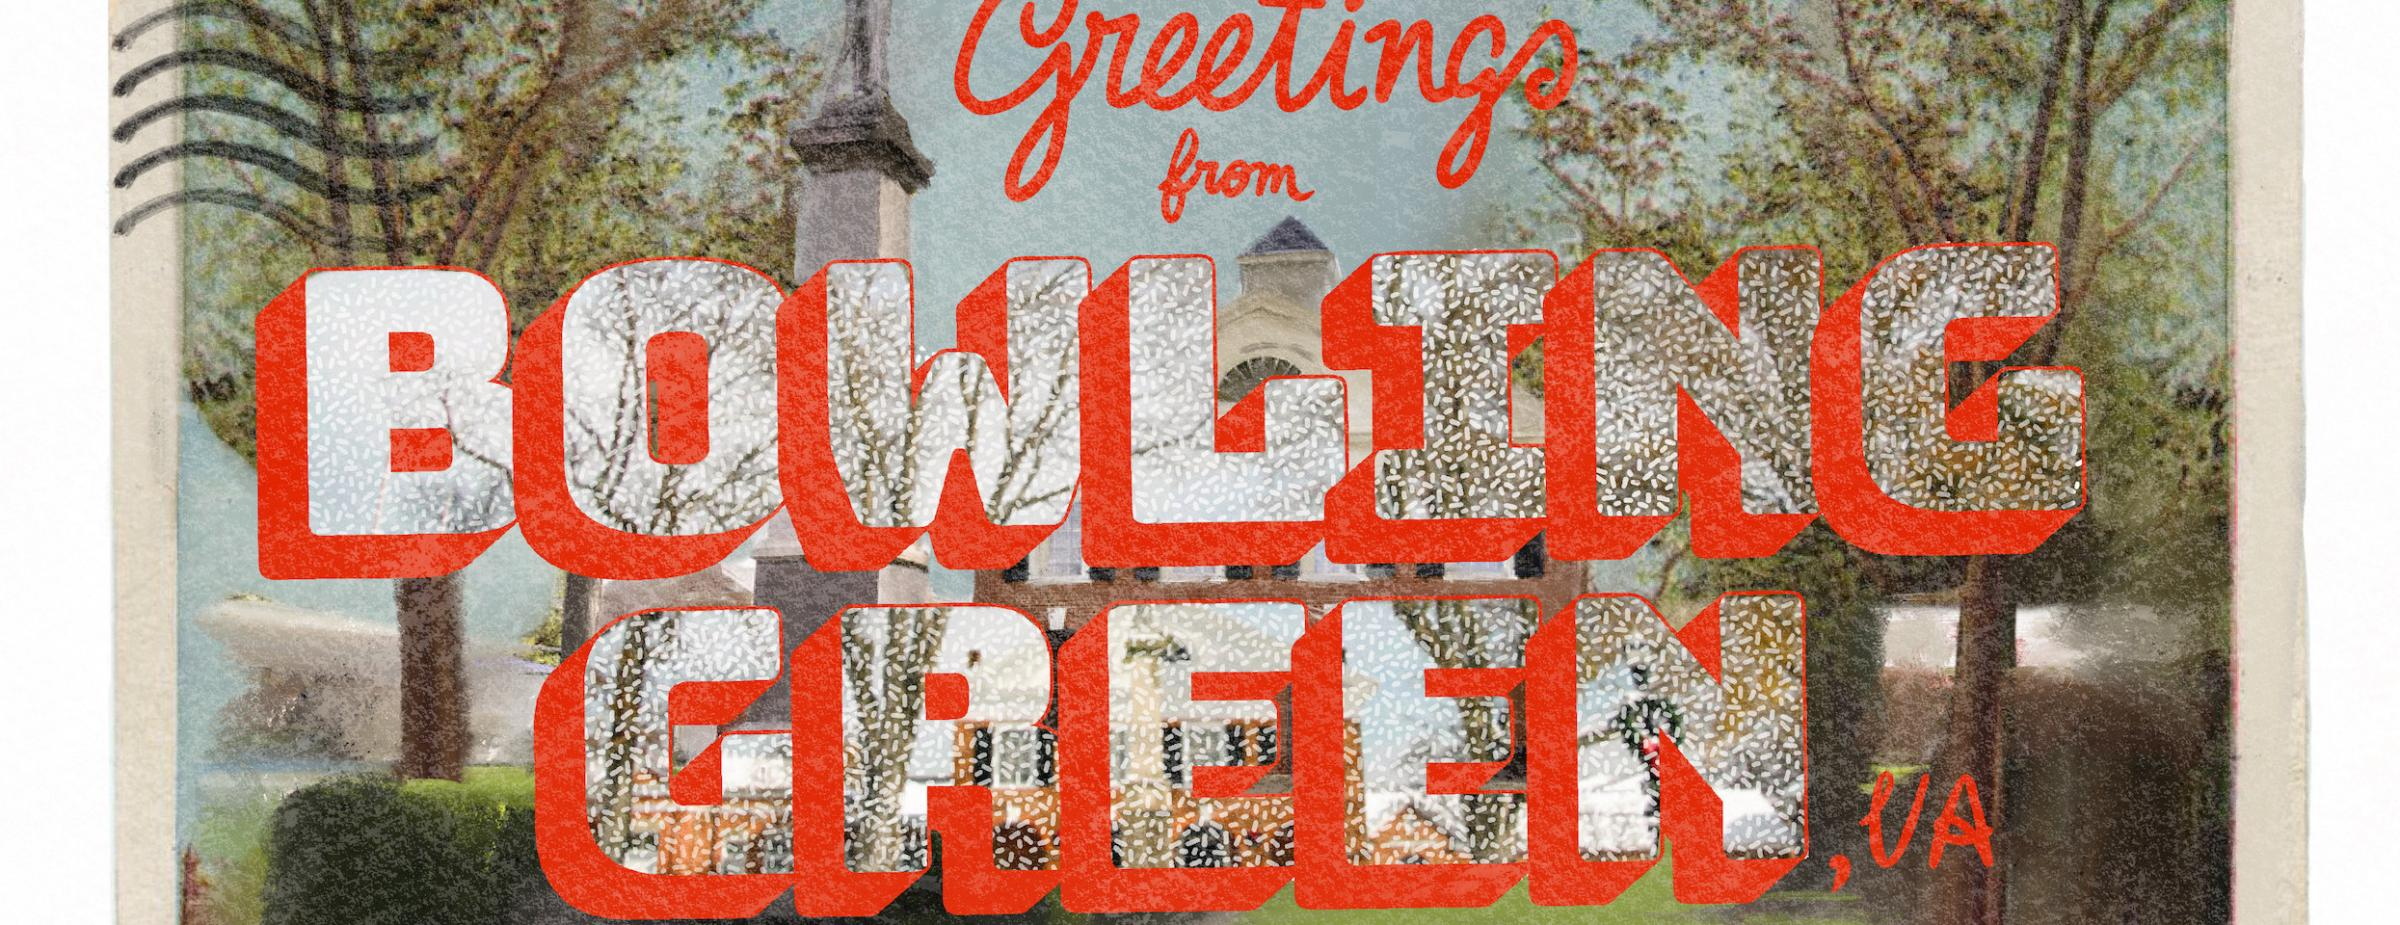 """vintage postcard reading """"Bowling Green"""" in large letters against leafy background"""